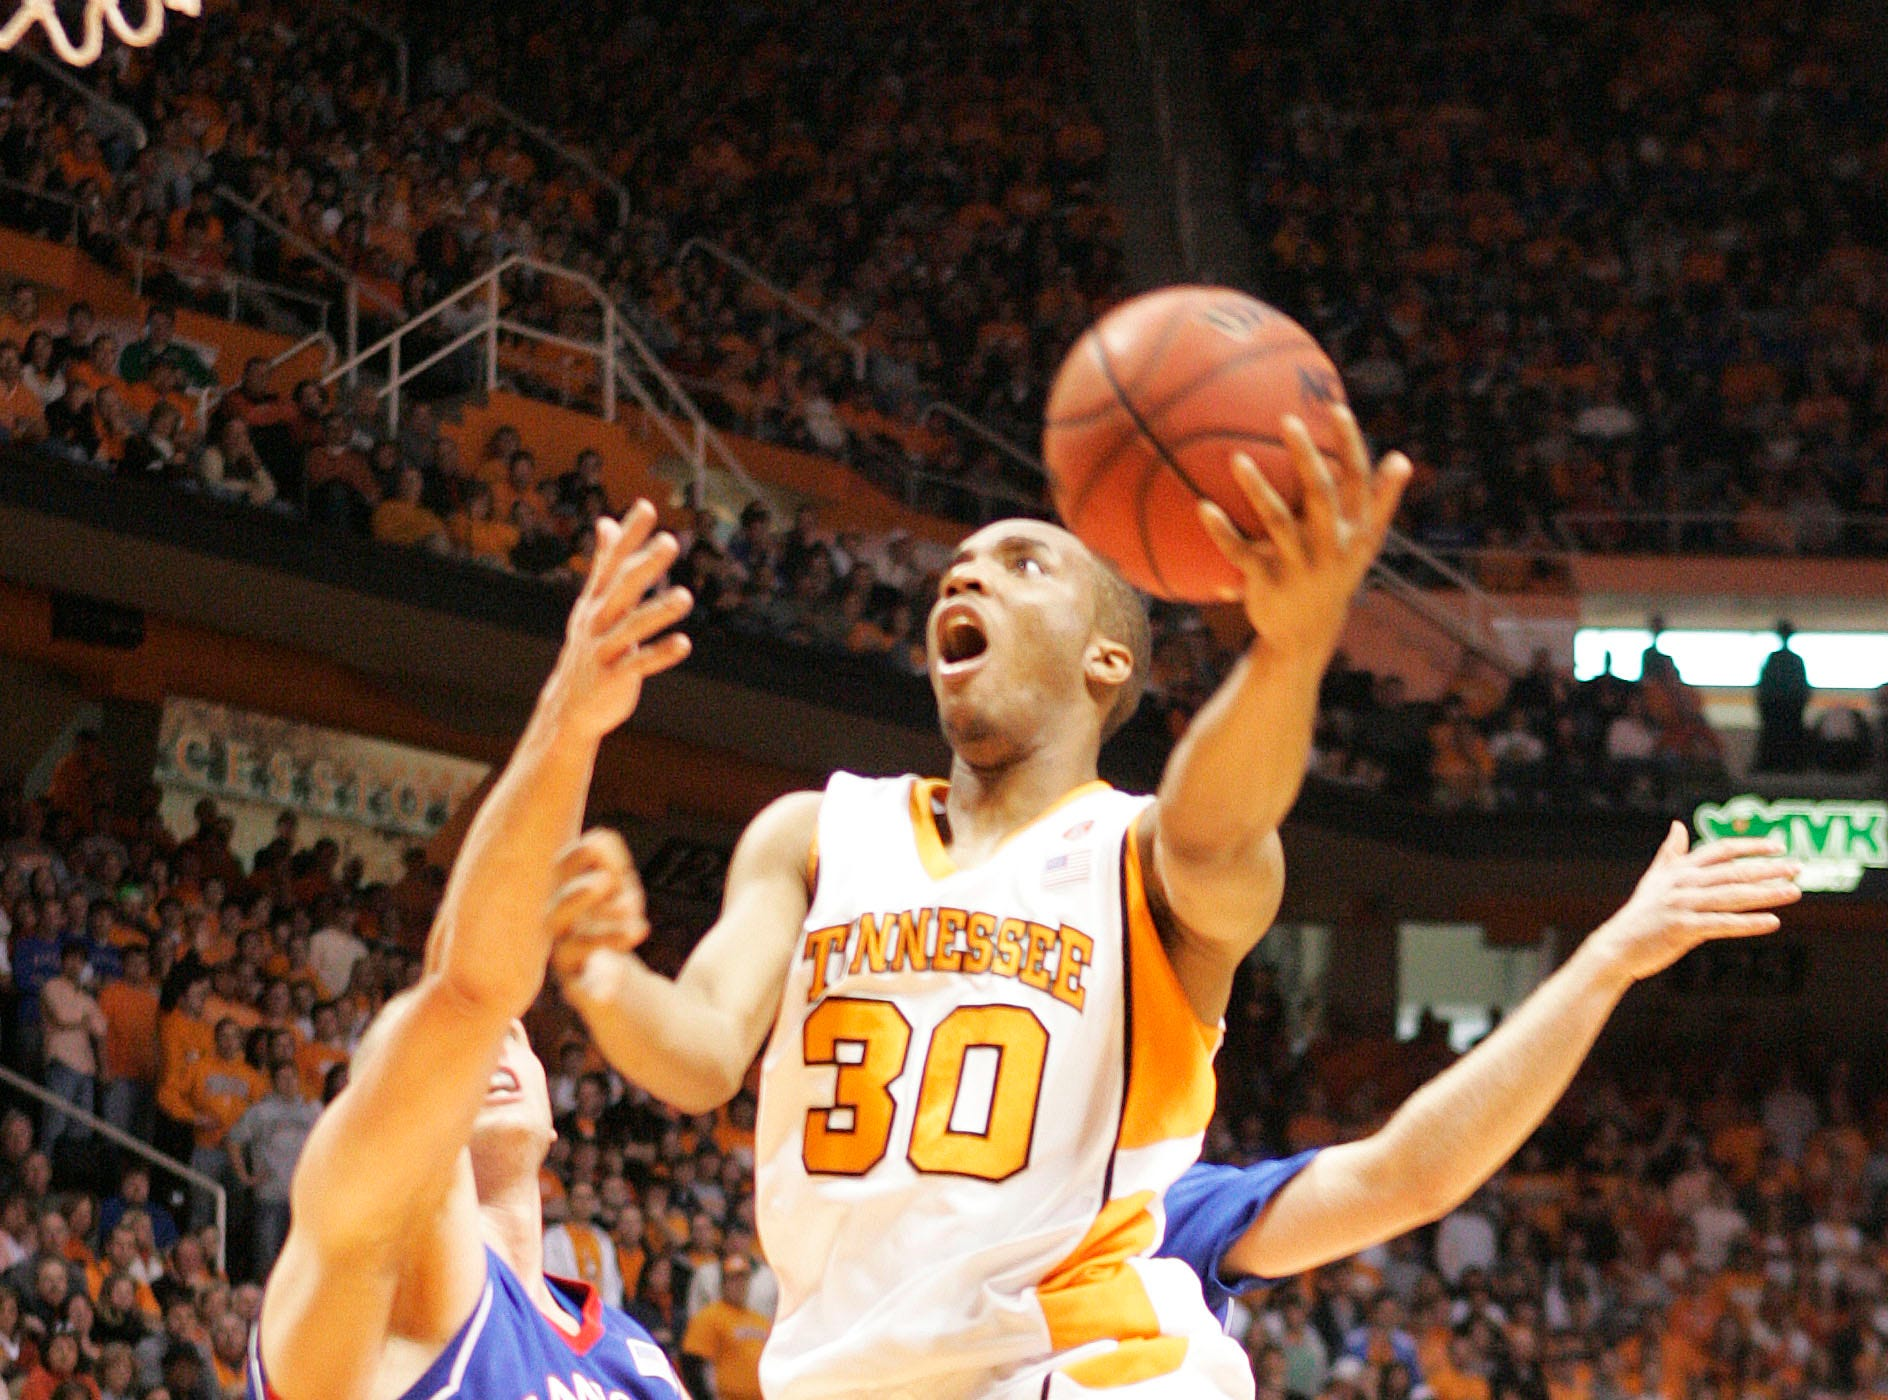 Tennessee's J.P. Prince (30) drives to the basket against Kansas'  Cole Aldrich (45) during the first half of an NCAA college basketball game Sunday, Jan. 10, 2010 in Knoxville, Tenn.